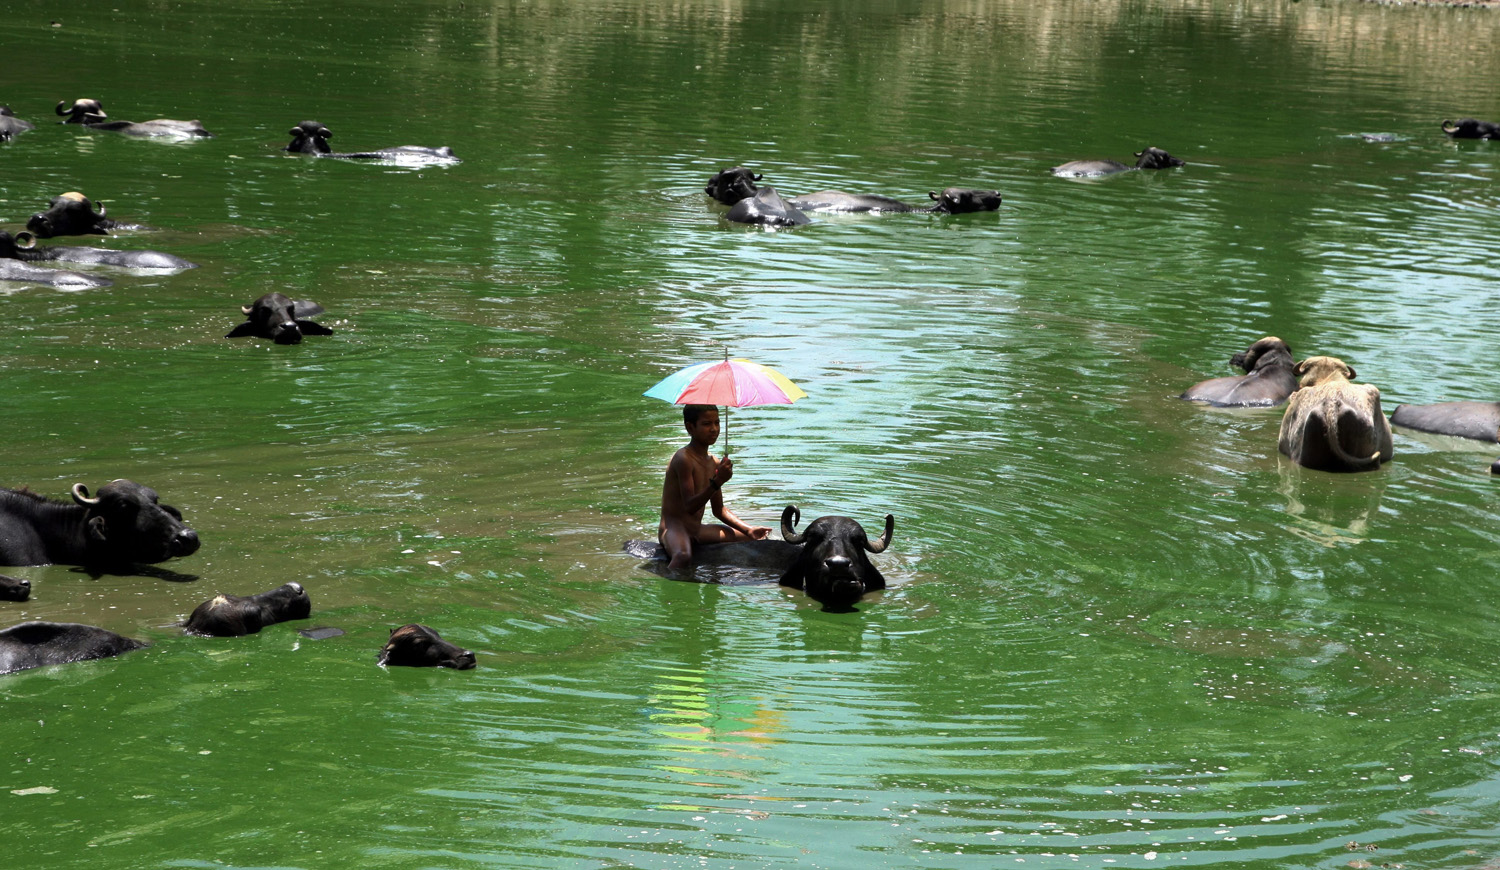 An Indian boy holds an umbrella to protect himself from the sun as he cools off along with his buffalos in a pond on the outskirts of Jammu, the winter capital of Kashmir, India, June 10, 2014.